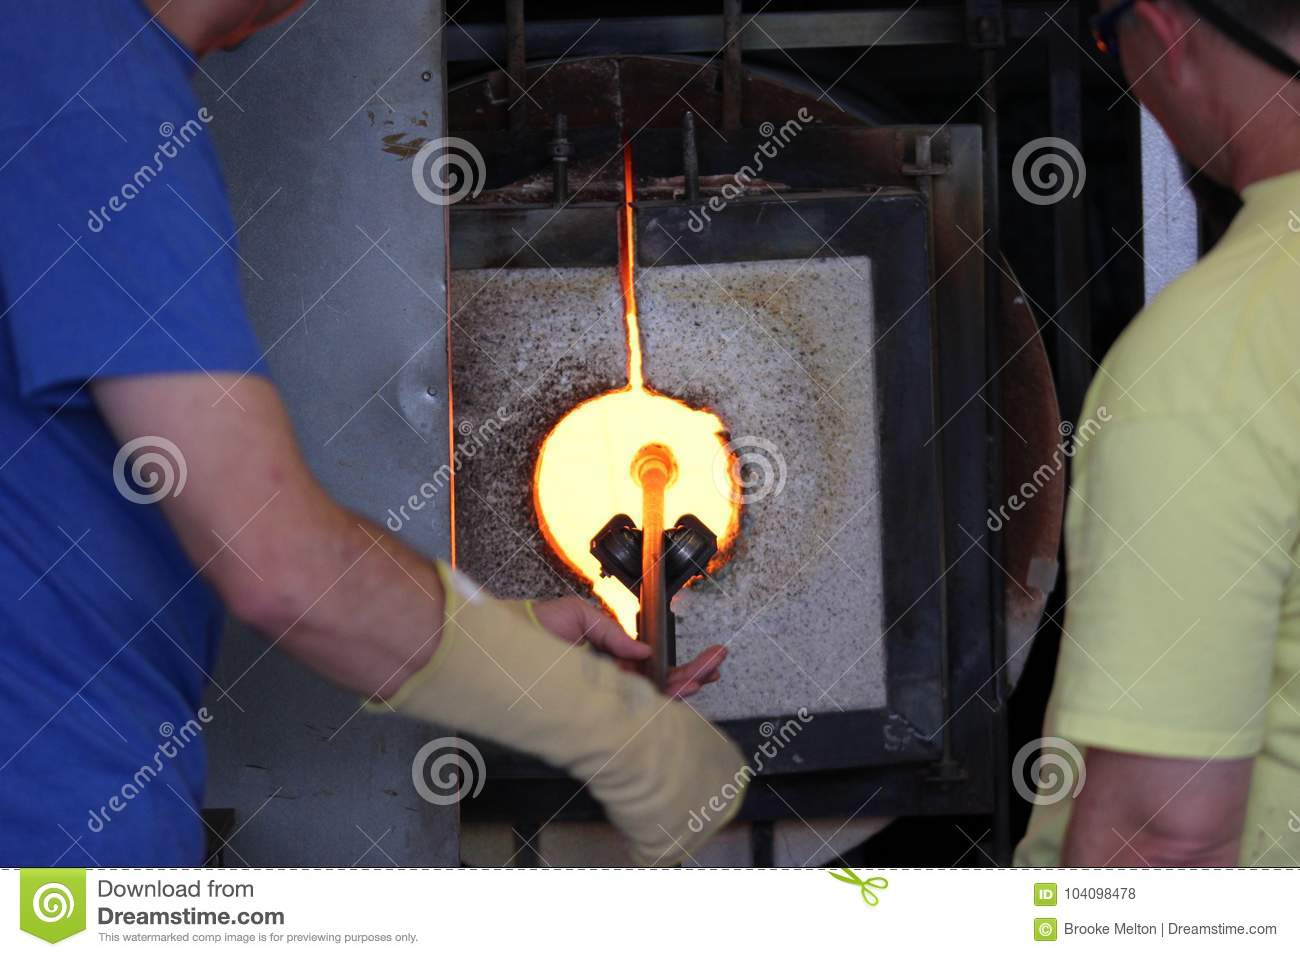 Molten glass on a metal rod in a furnace for glass blowing macro